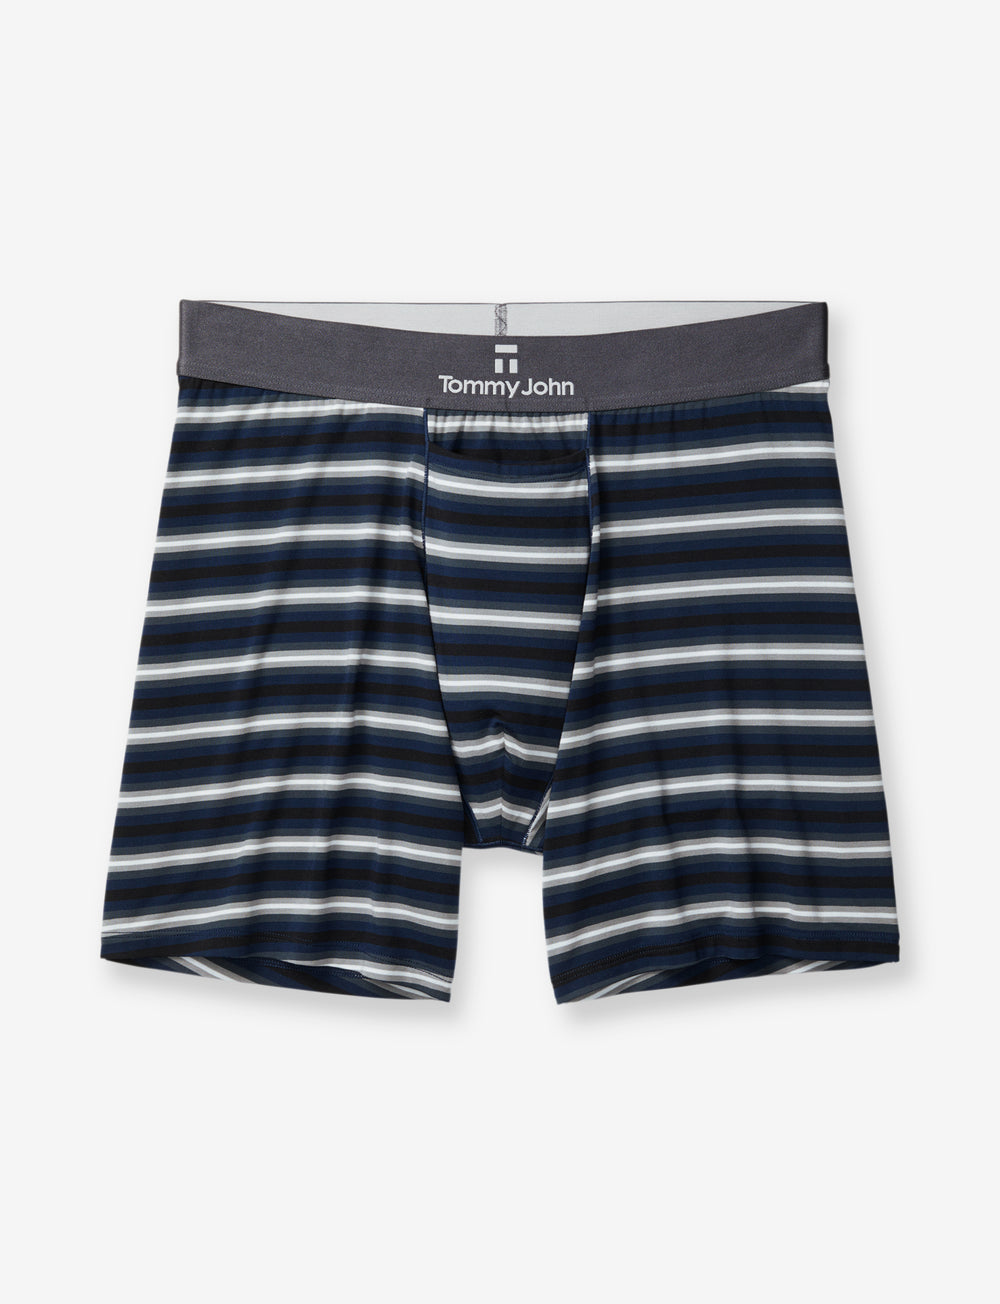 Second Skin Dark Titanium Stripe Relaxed Fit Boxer Details Image